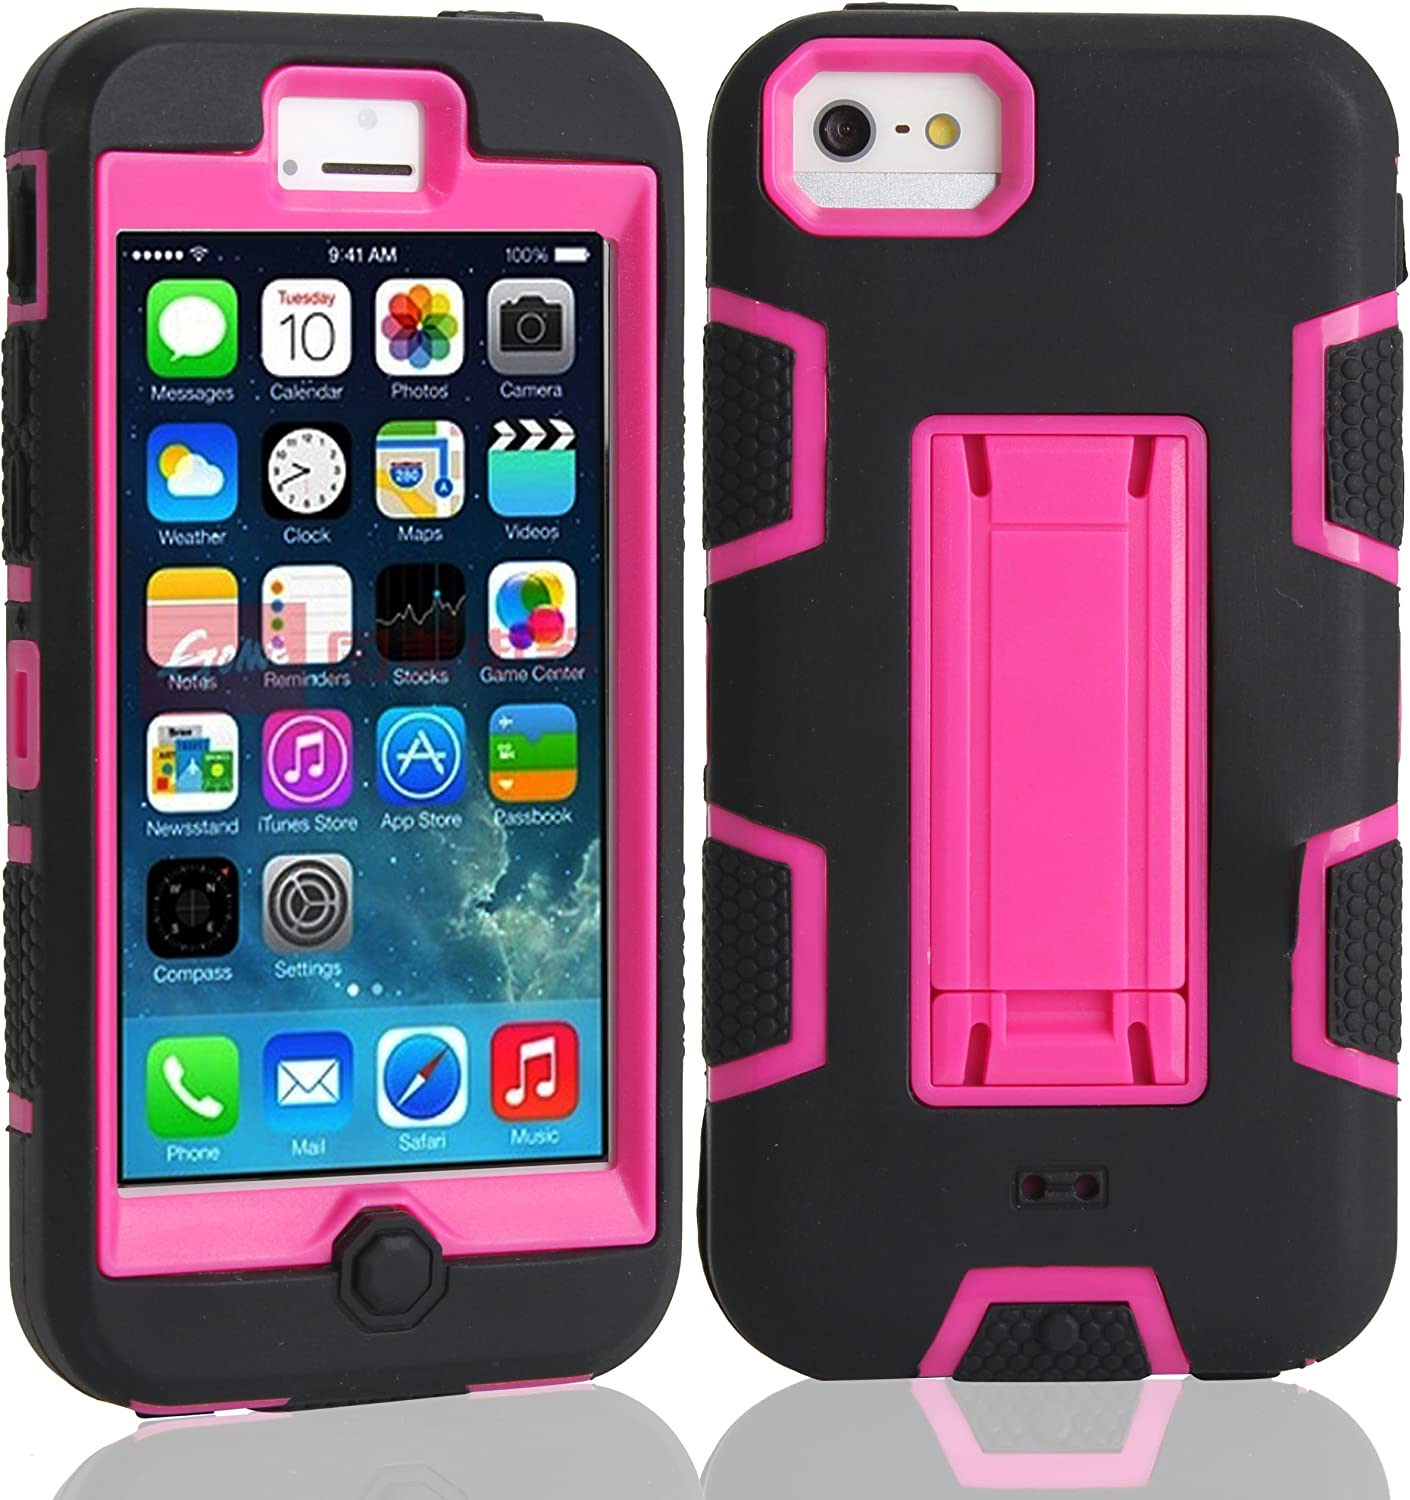 Slim Thin iPhone 5C Armor Kickstand Case,Heavy Duty rose 2 Hybrid Shock Absorption Scratch Resistant TPU Grip Skin Silicone Full-body Protective Cover Shell for Apple iPhone 5C